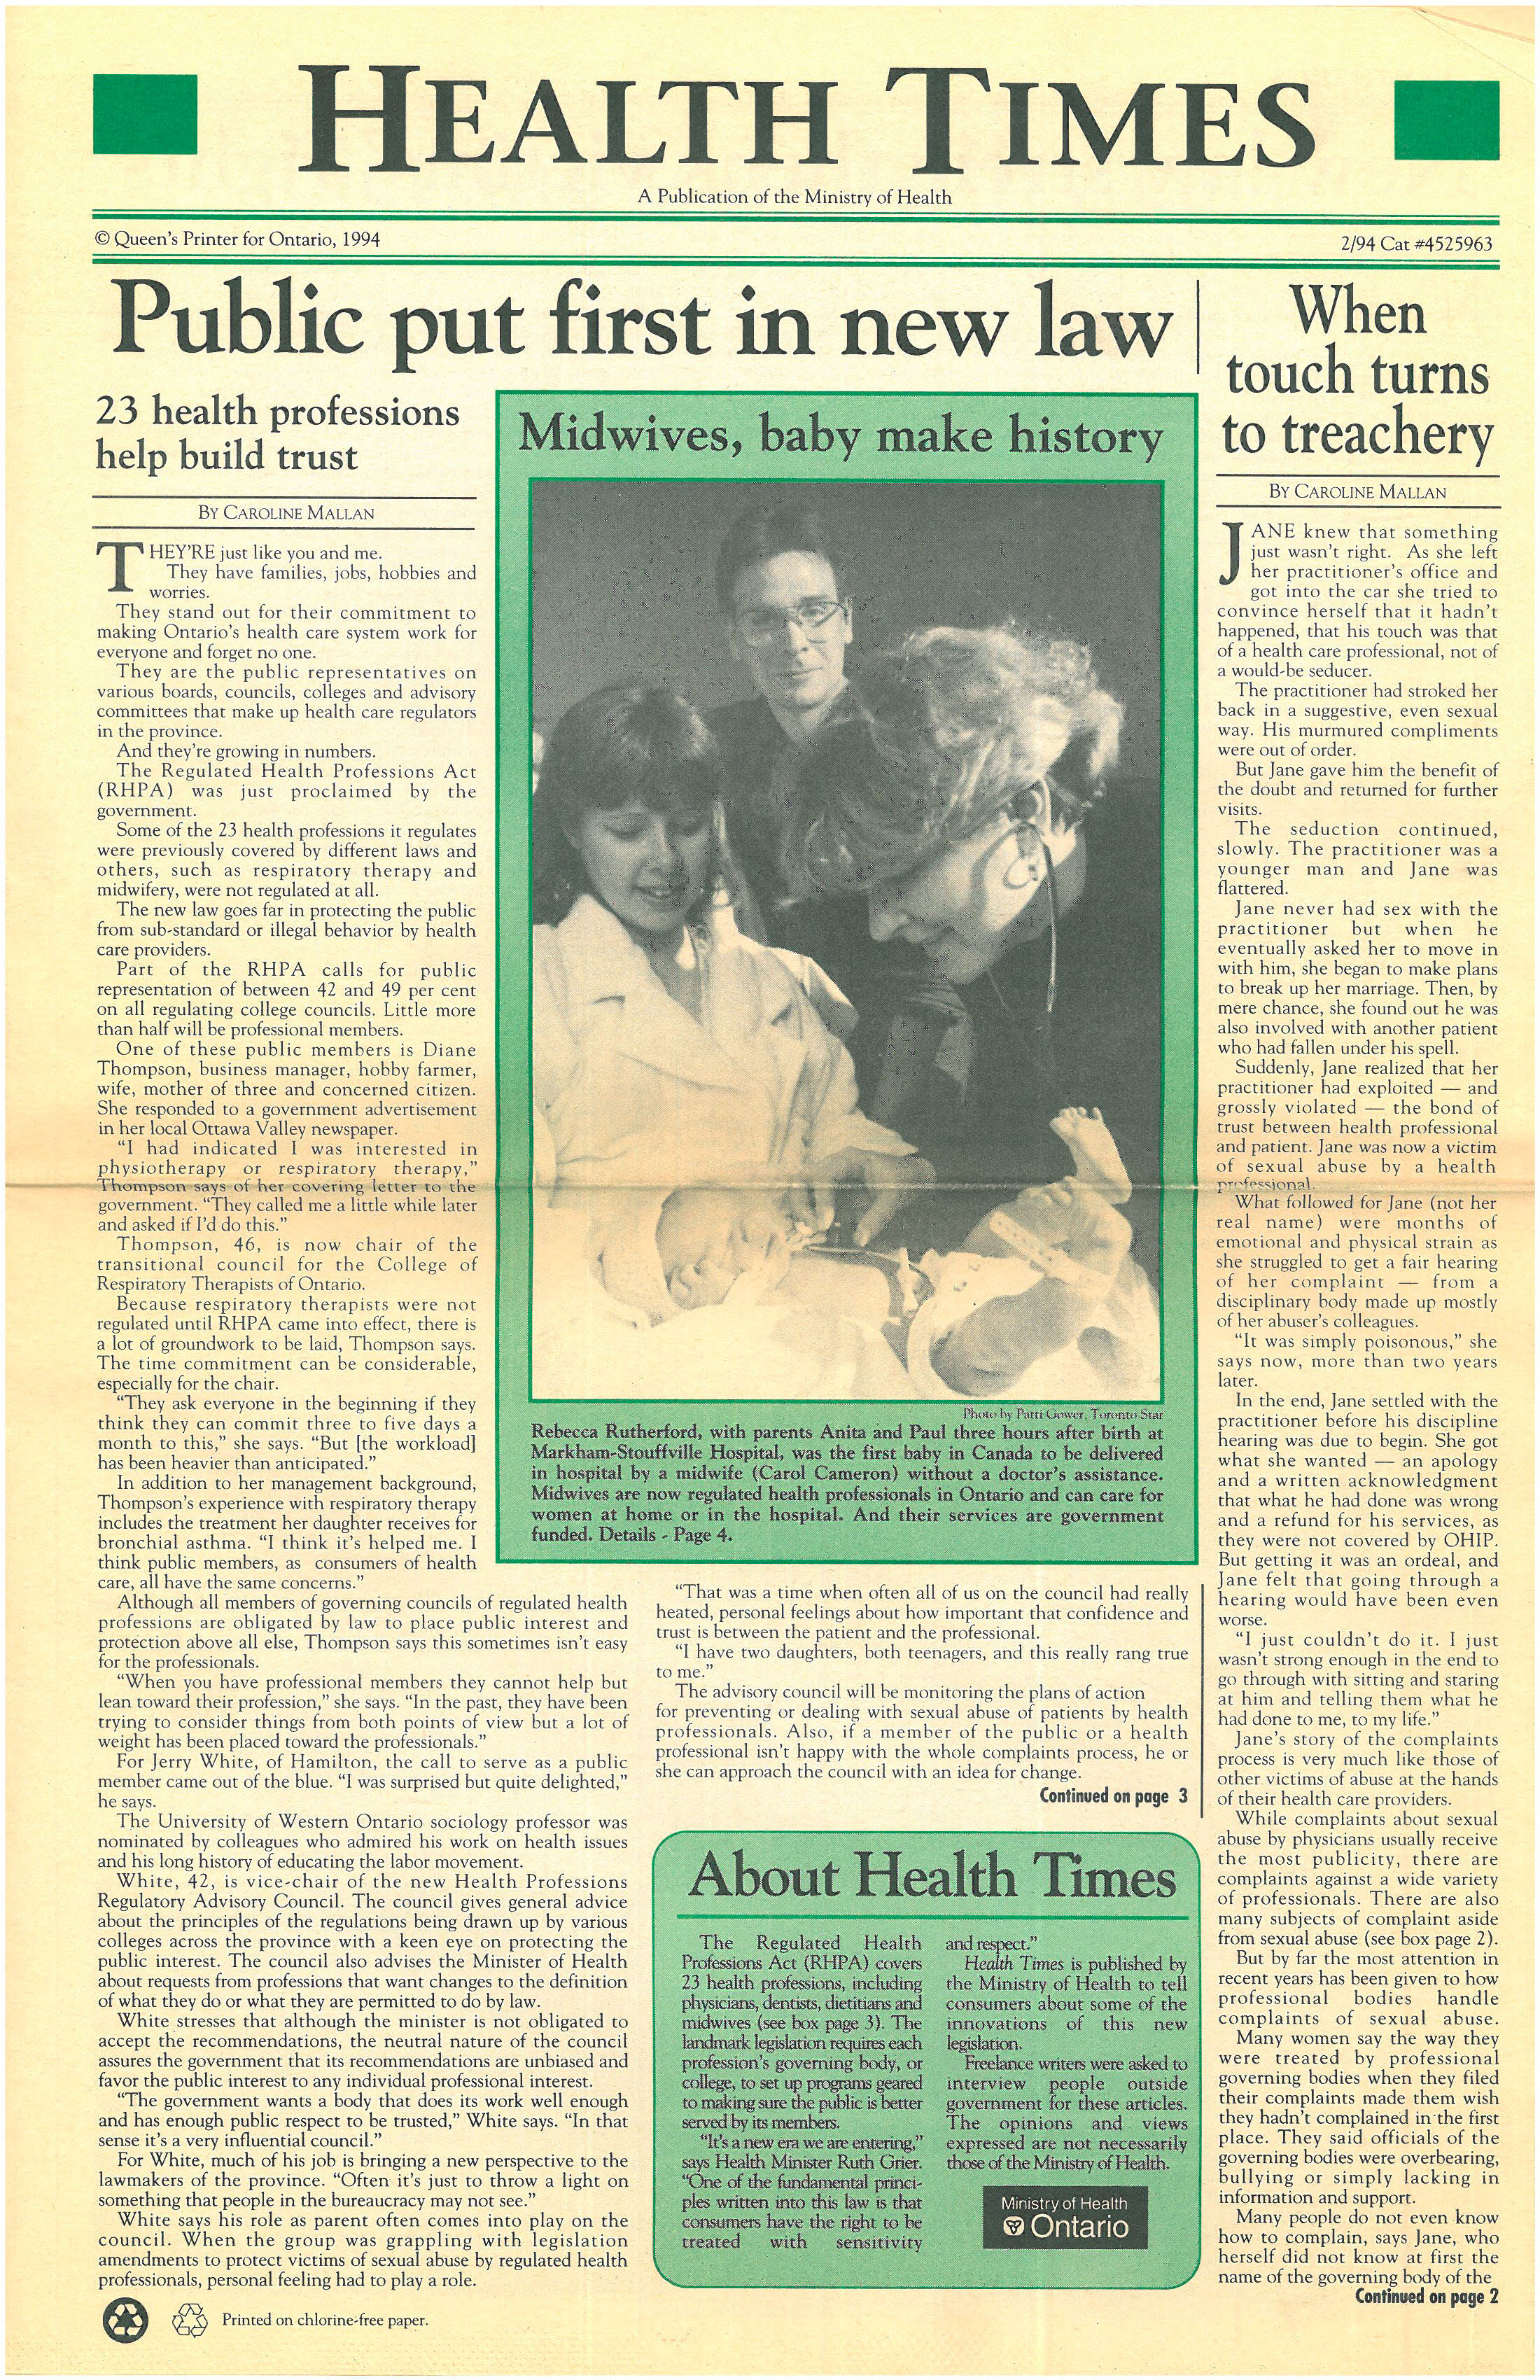 The image shows a copy of the Health Times, a publication of the Ministry of Health, with a photo of the first baby born to midwives in a hospital in Ontario.